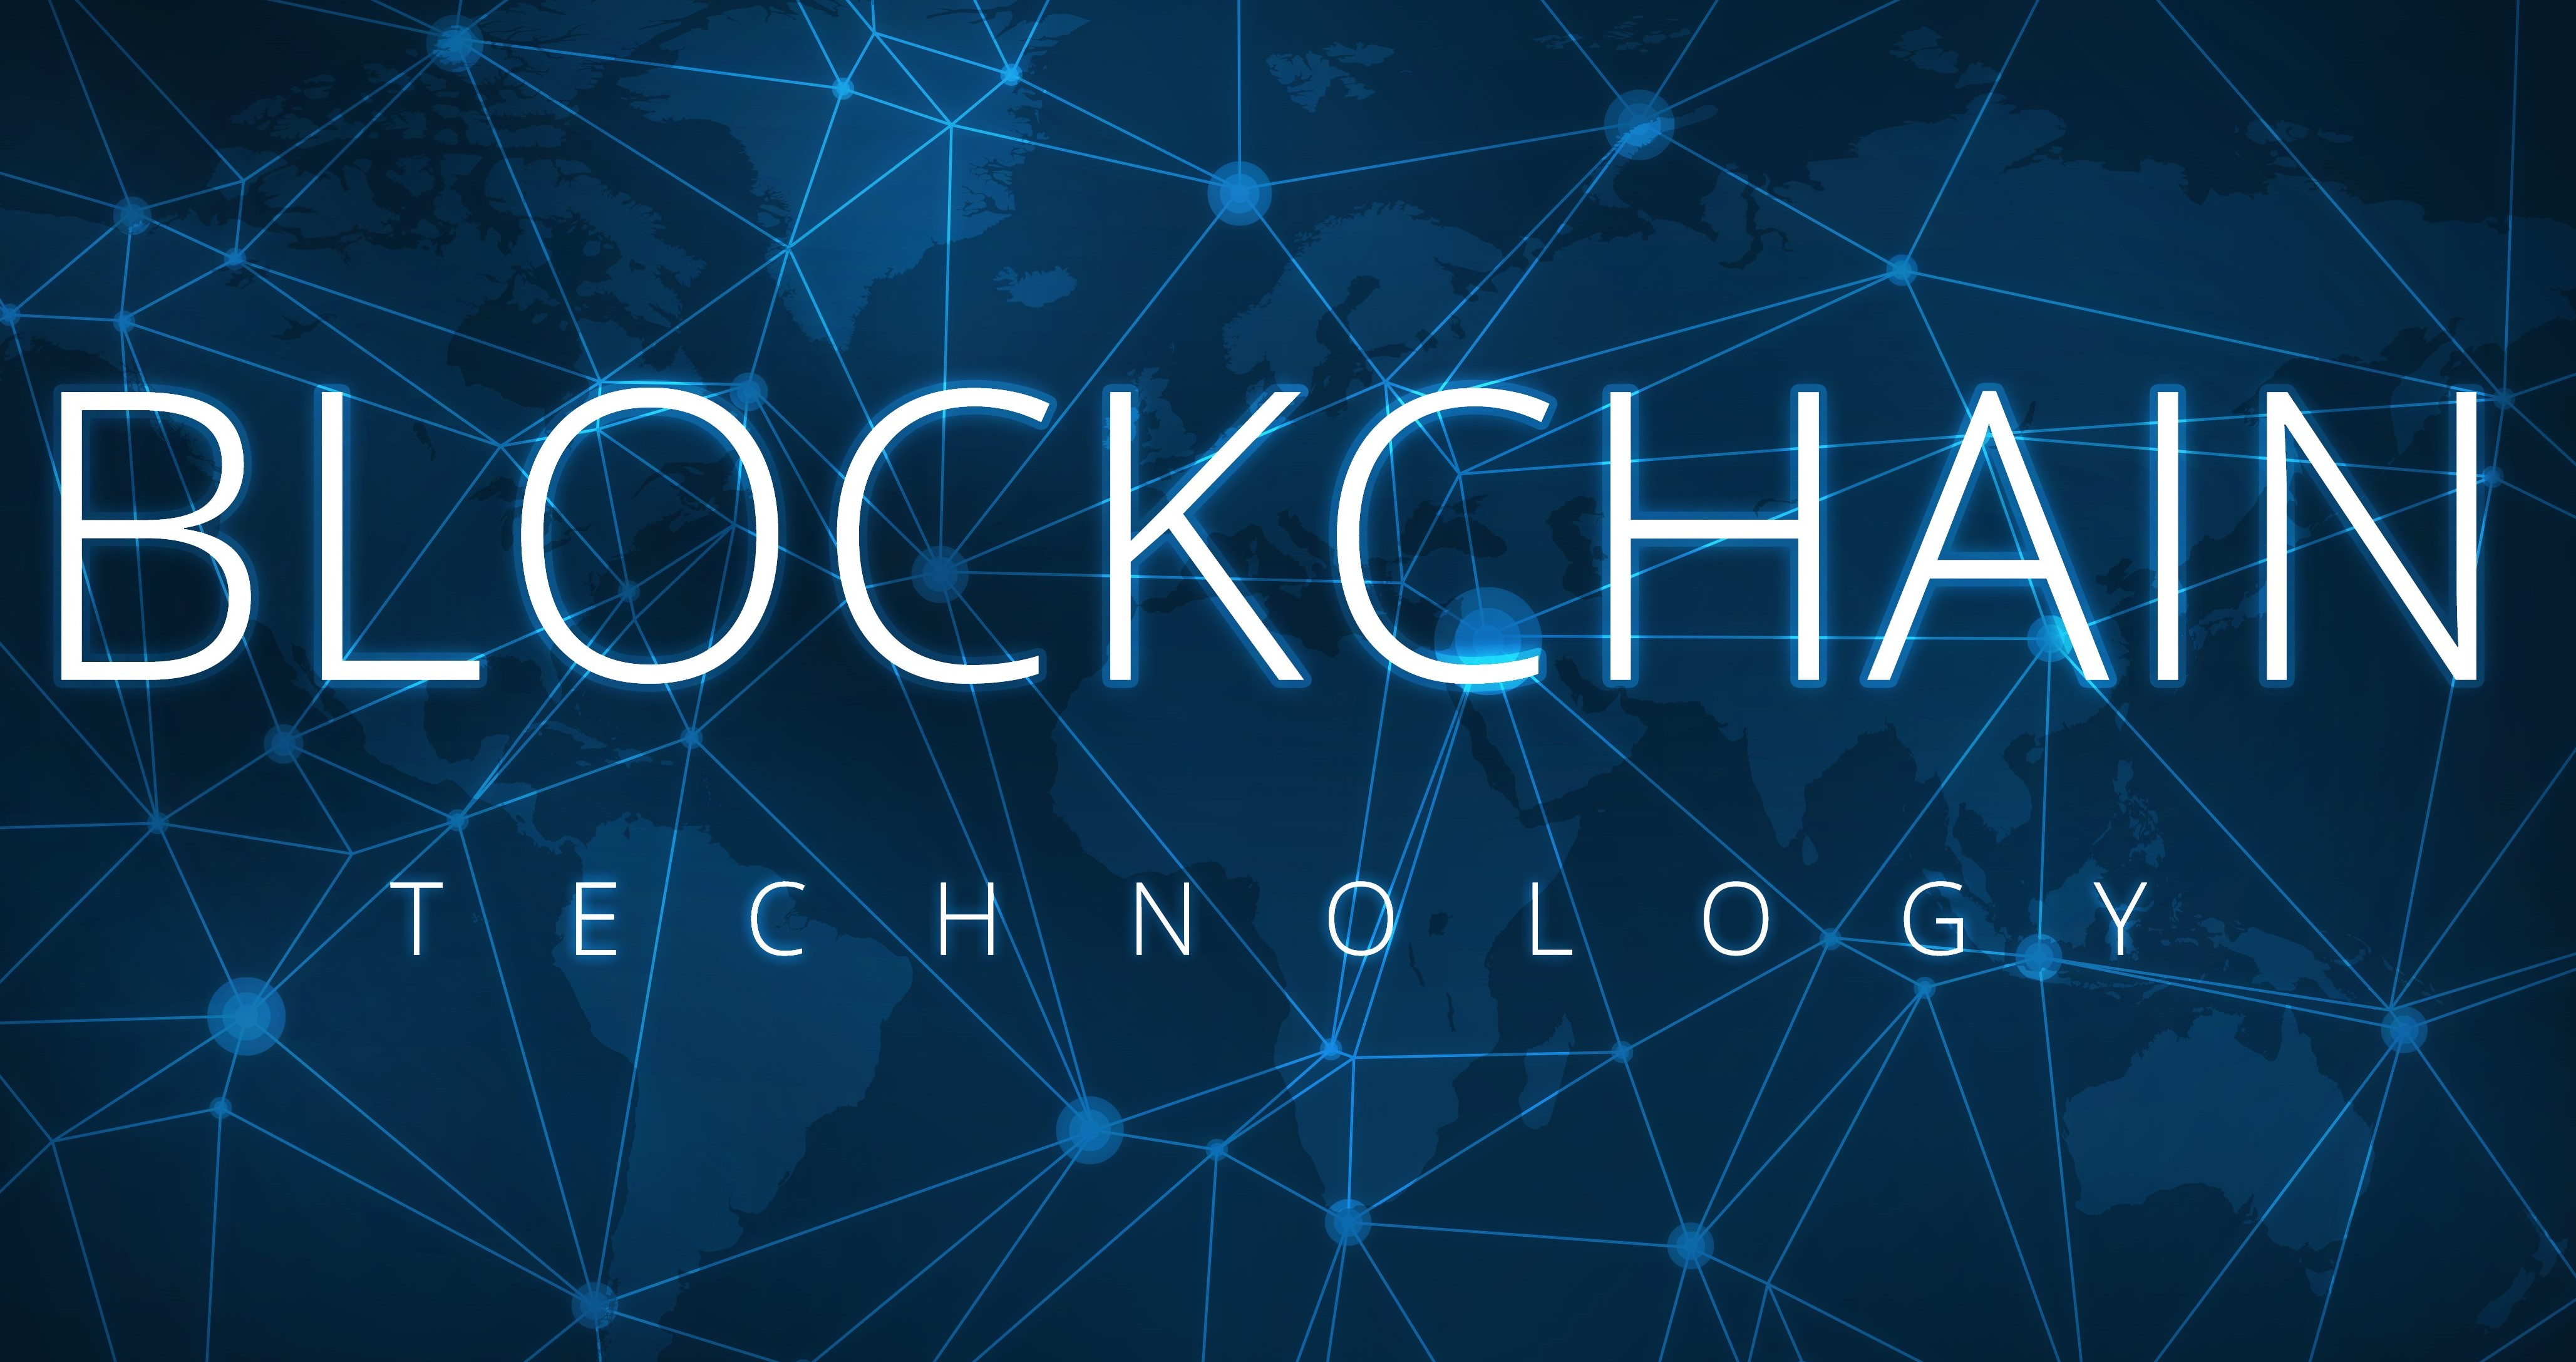 Blockchain technology sign with network points and a global map in background